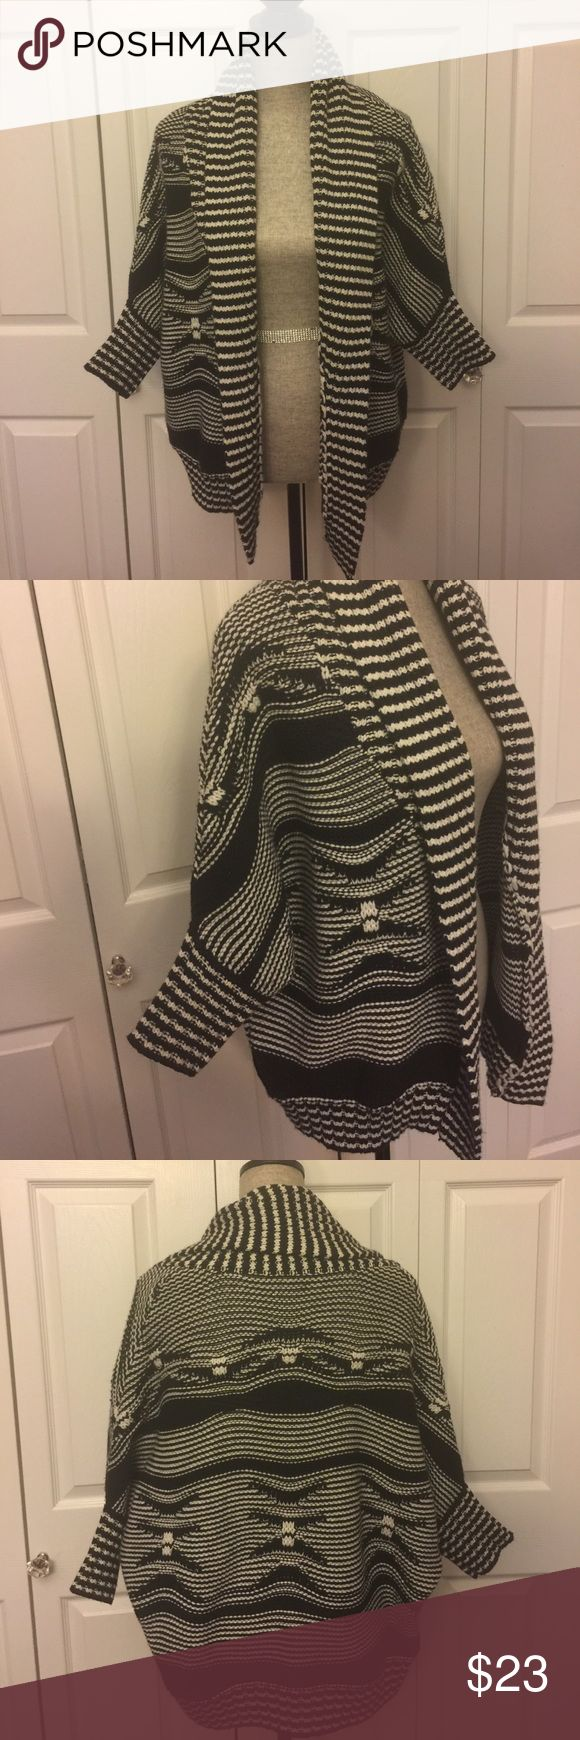 Express Oversized Black and White Tribal Cardigan Super cute and chunky oversized tribal print Express Cardigan. In great used condition! No tears or stains! Express Sweaters Cardigans